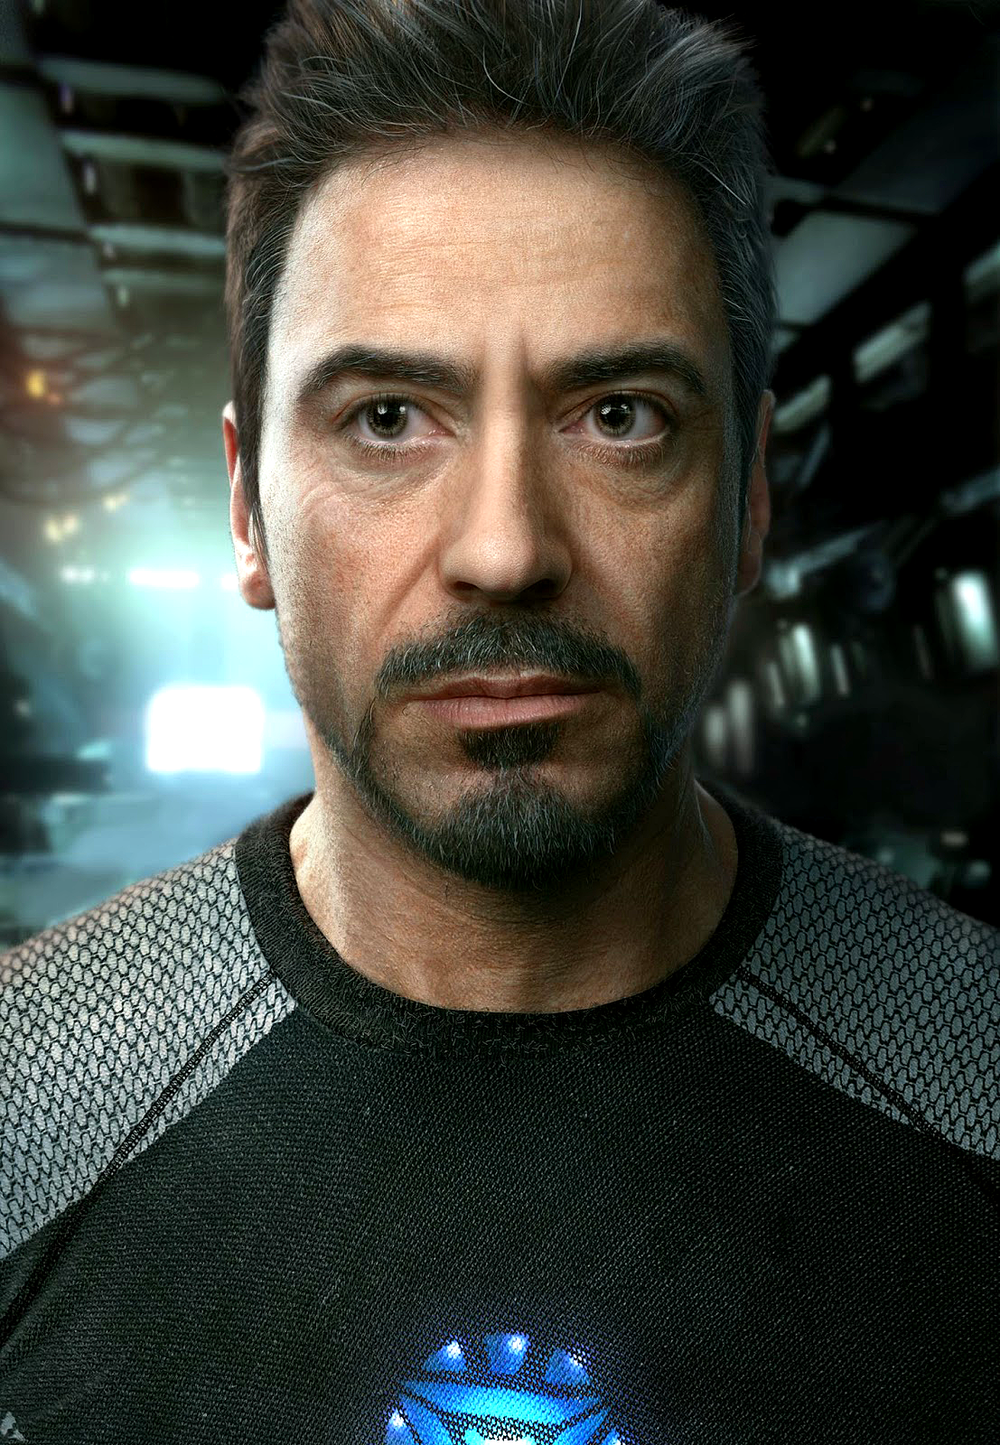 Realistic CG portrait of Robert Downey Jr – by Frank Tzeng and Yibing Jiang